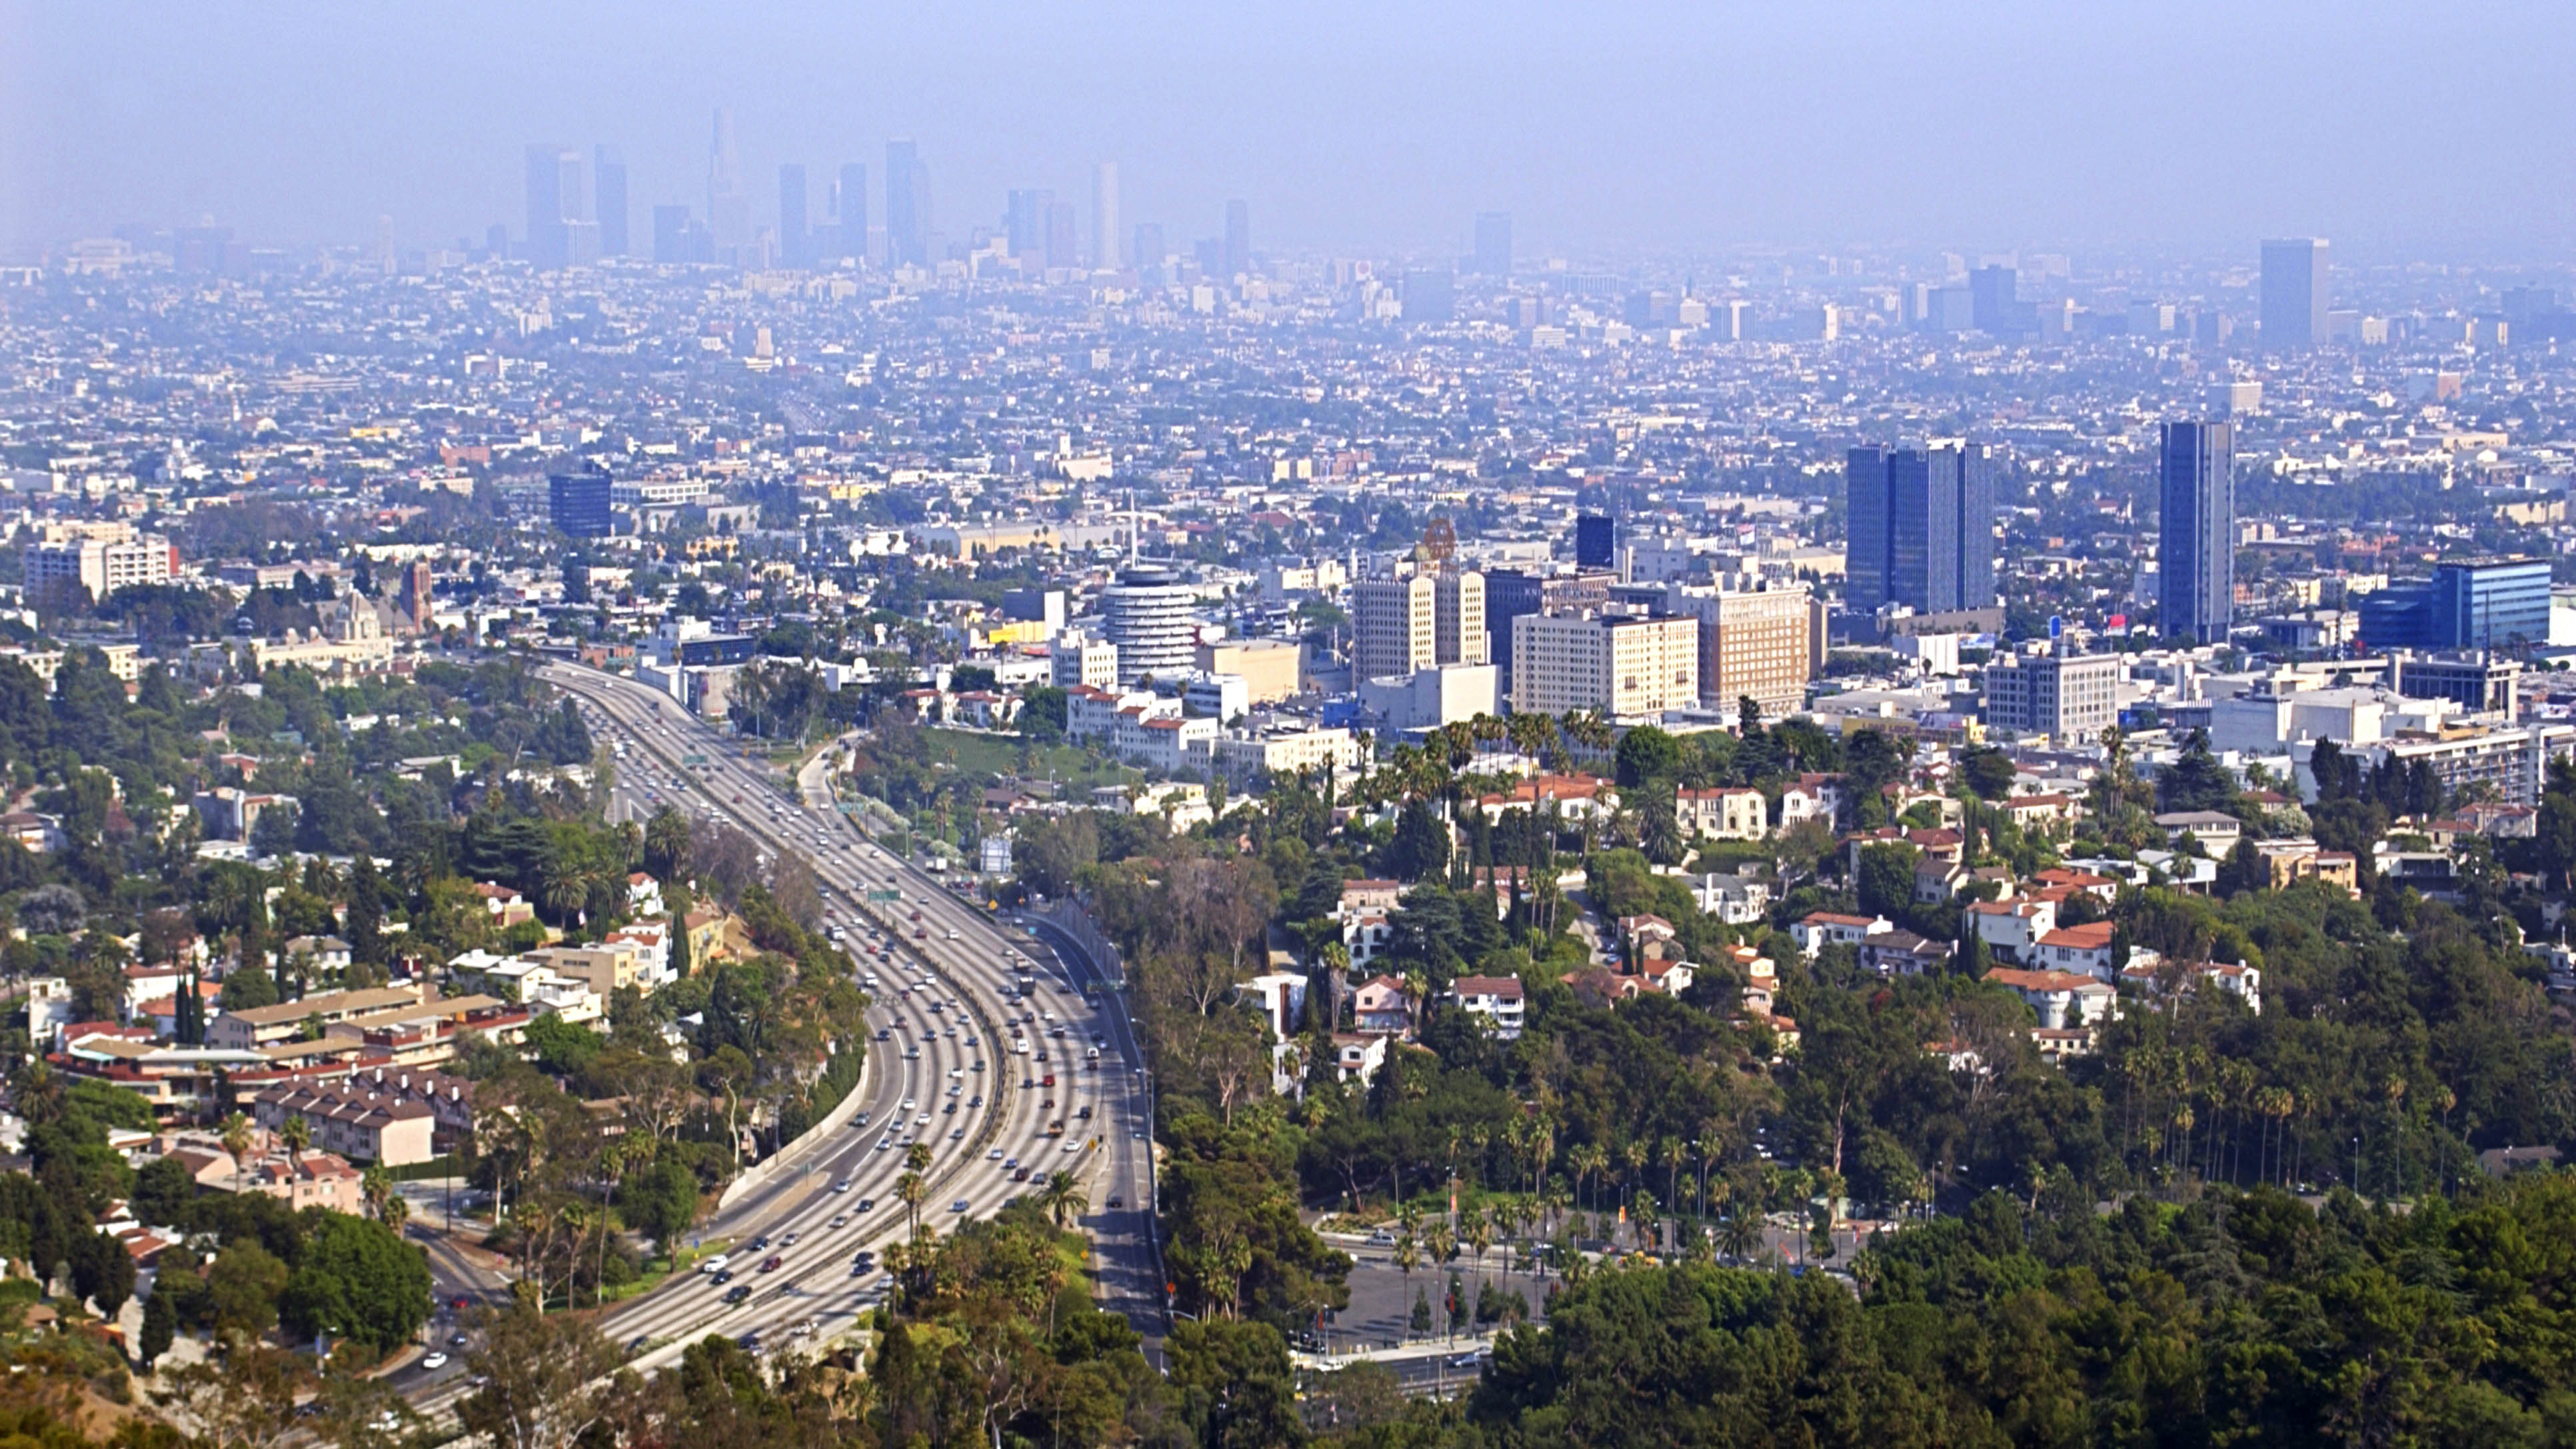 10 Things You Didn't Know About L.A.